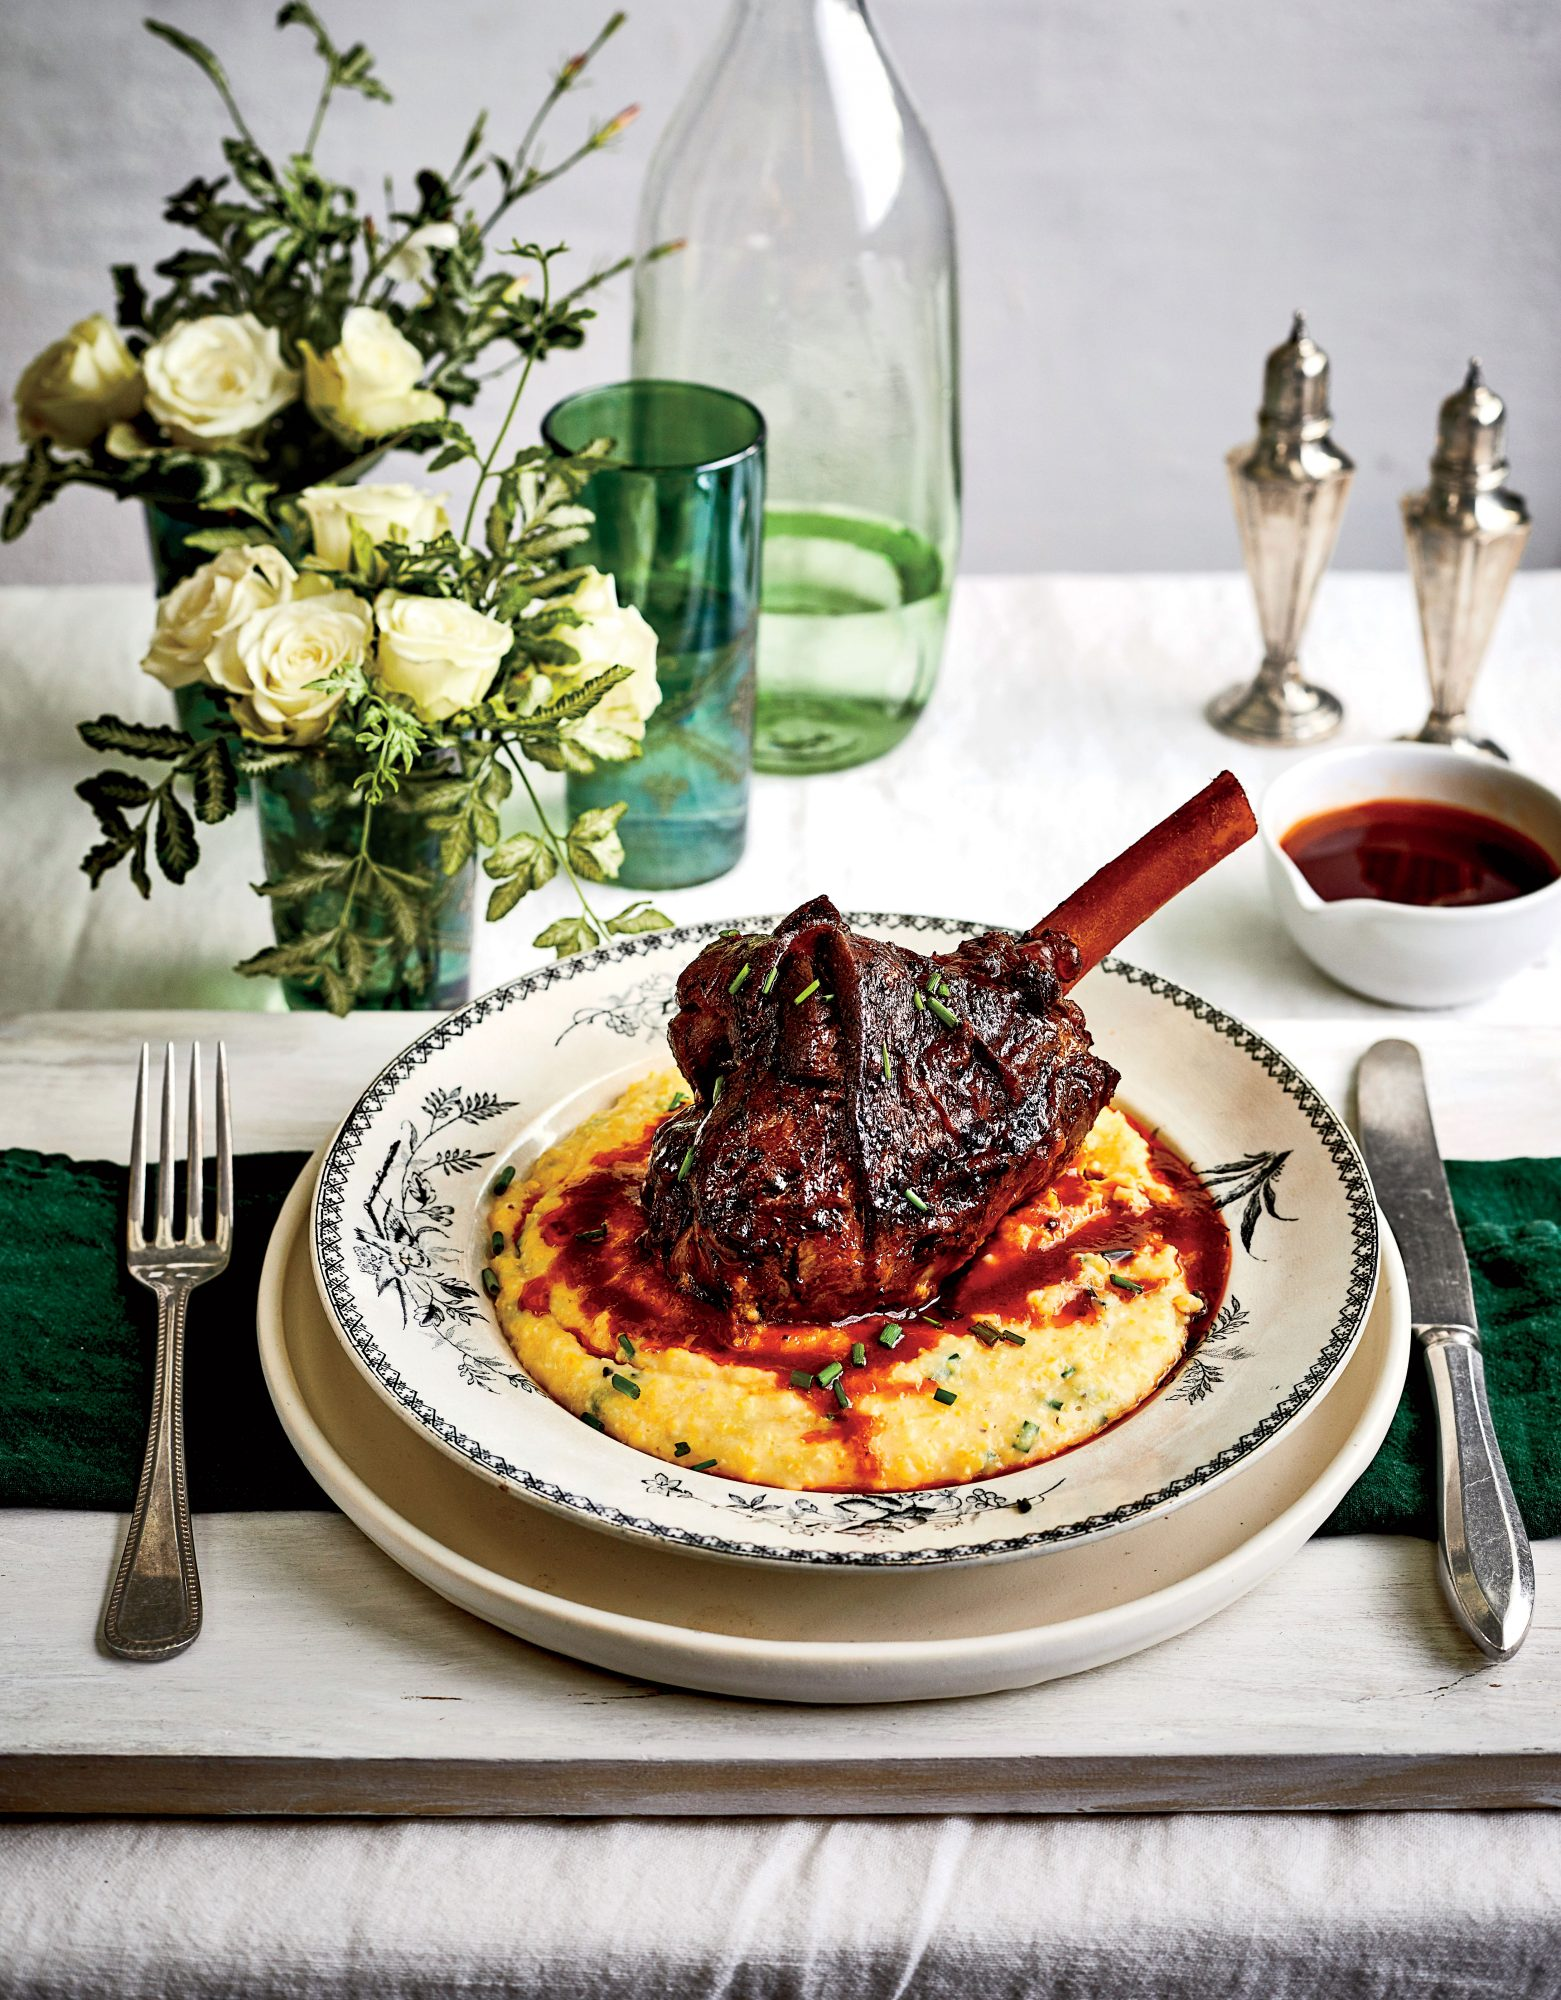 Braised Lamb Shanks with Parmesan-Chive Grits